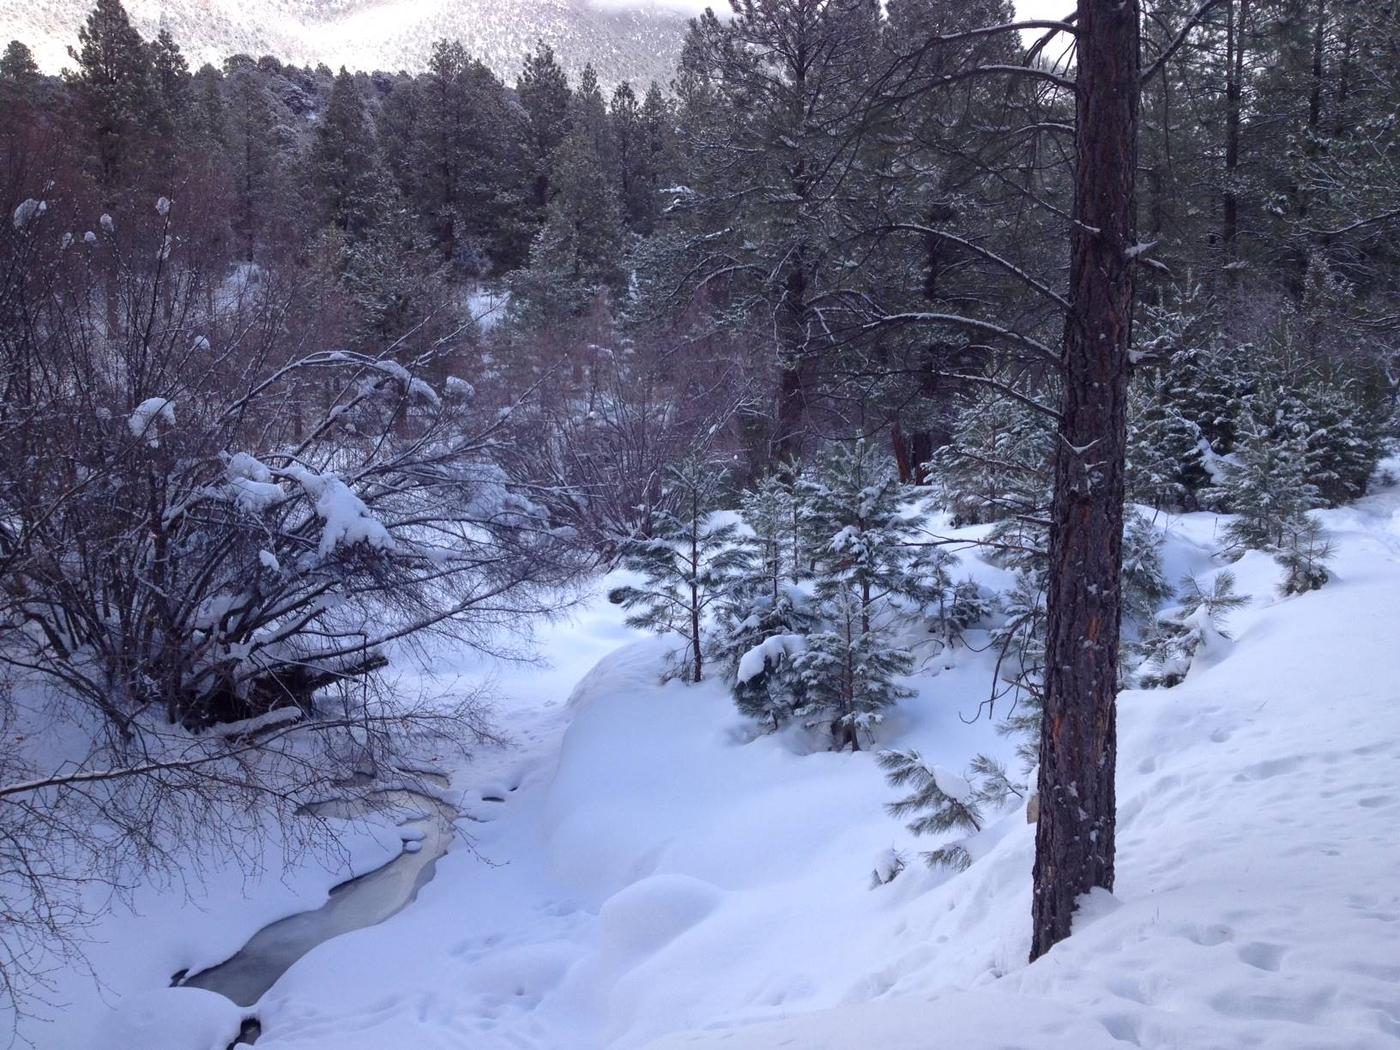 Winter view of the Santa Clara River hiking into the PIne Valley Guard StationView of the Santa Clara River, in the winter, hiking into the Pine Valley Guard Station